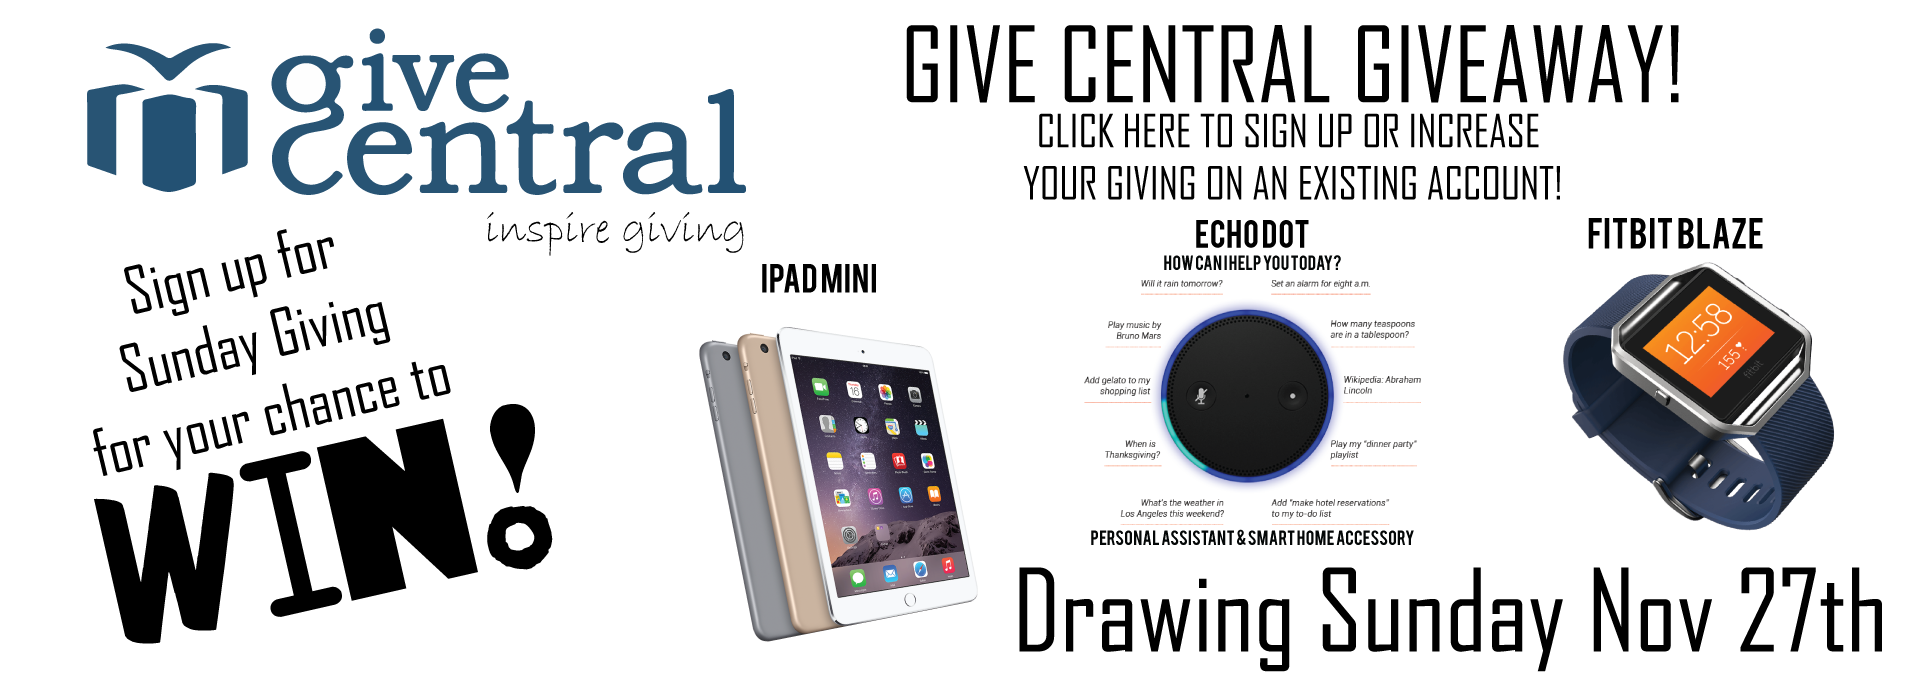 Give Central Give Away